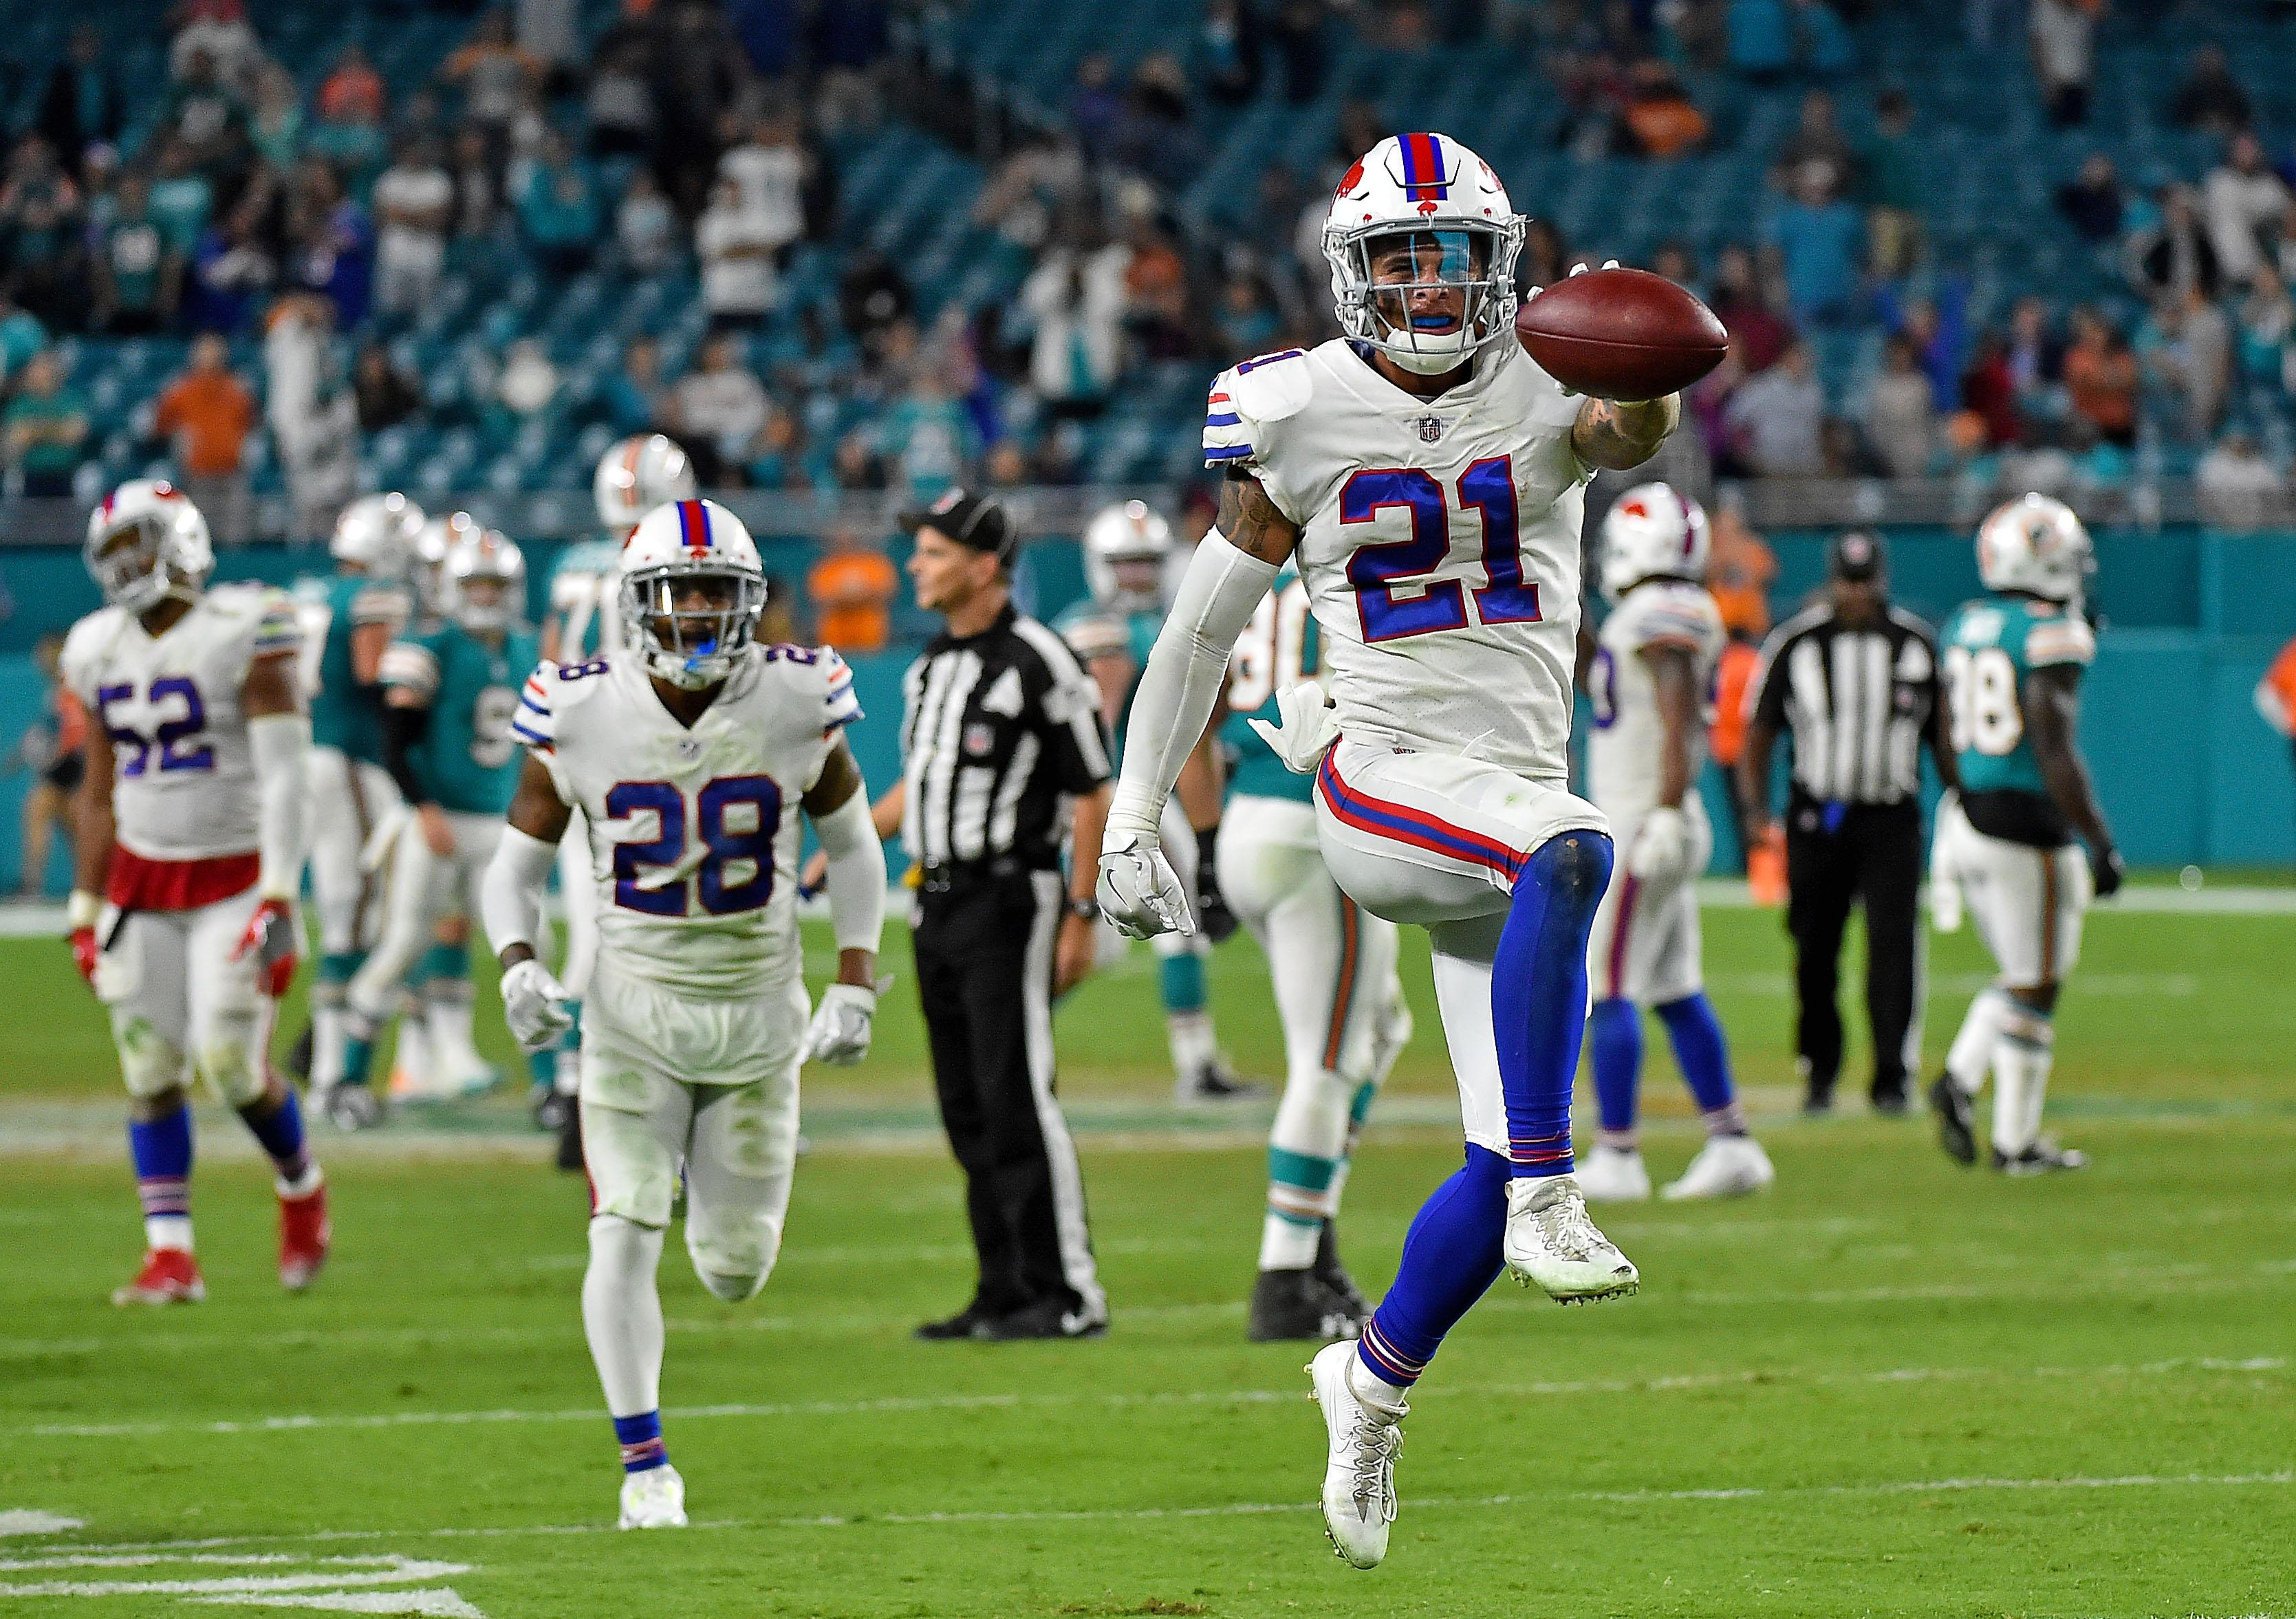 Buffalo beat Miami in week 17 but were helped by Baltimore's surprise loss to Cincinnati